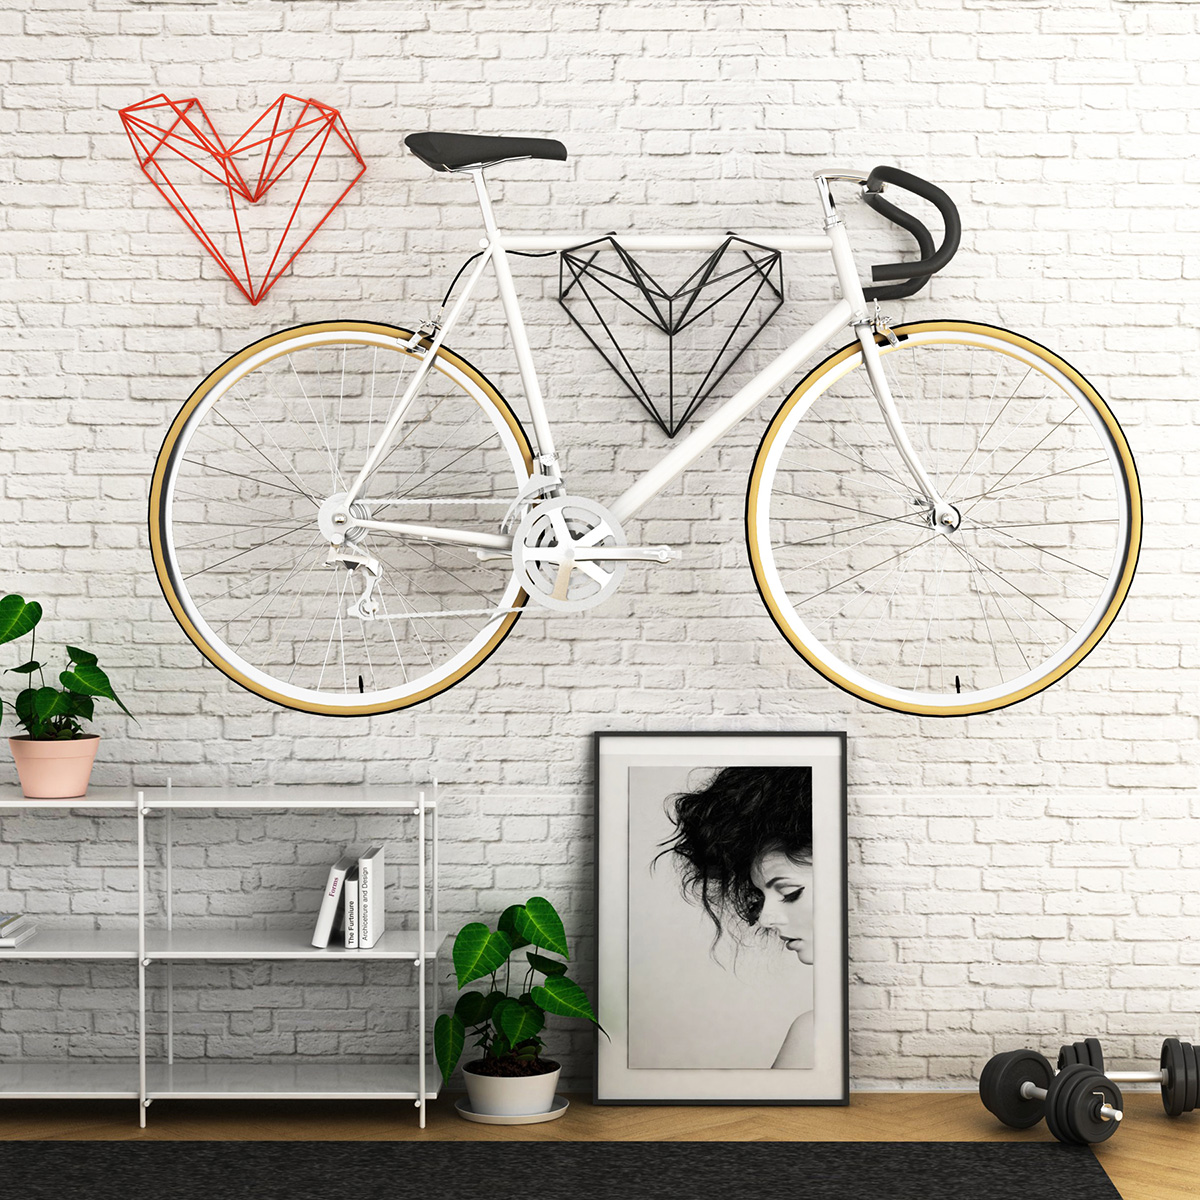 05-heart-hang-bike